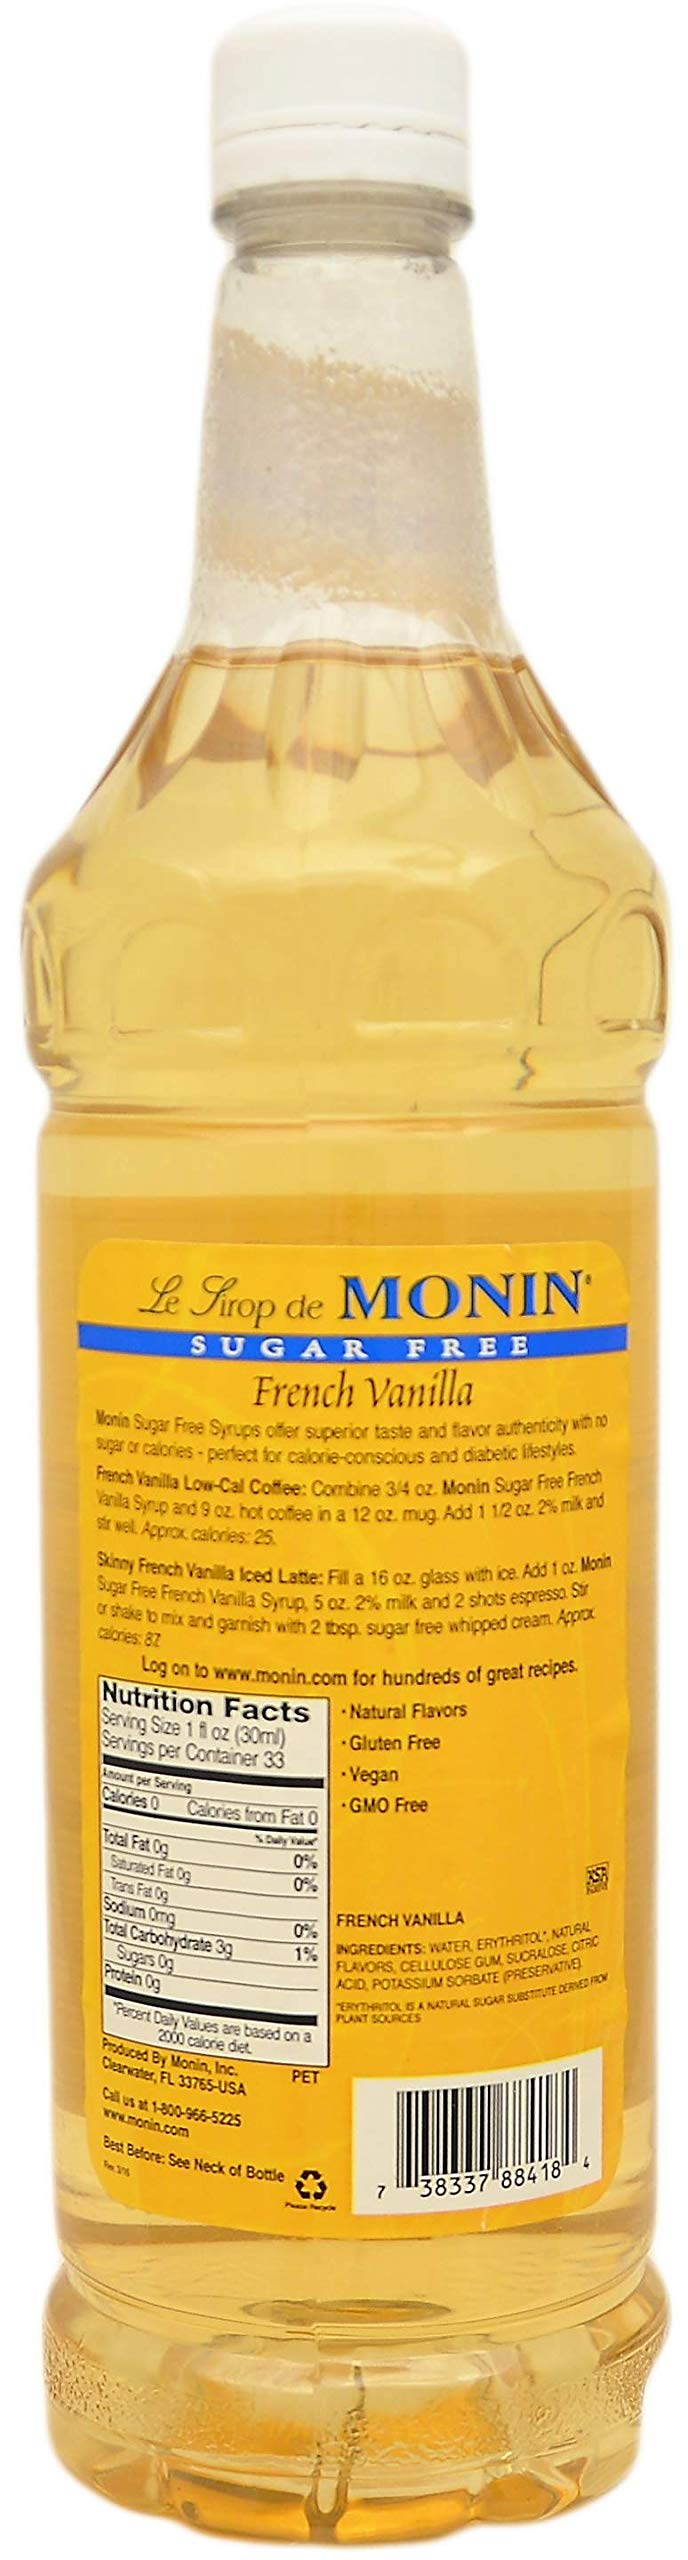 By The Cup Pump and Syrup Combo - Monin Sugar-Free Vanilla and Sugar-Free Caramel Syrup - 1 Liter Bottles with 2 Pumps by By The Cup (Image #2)